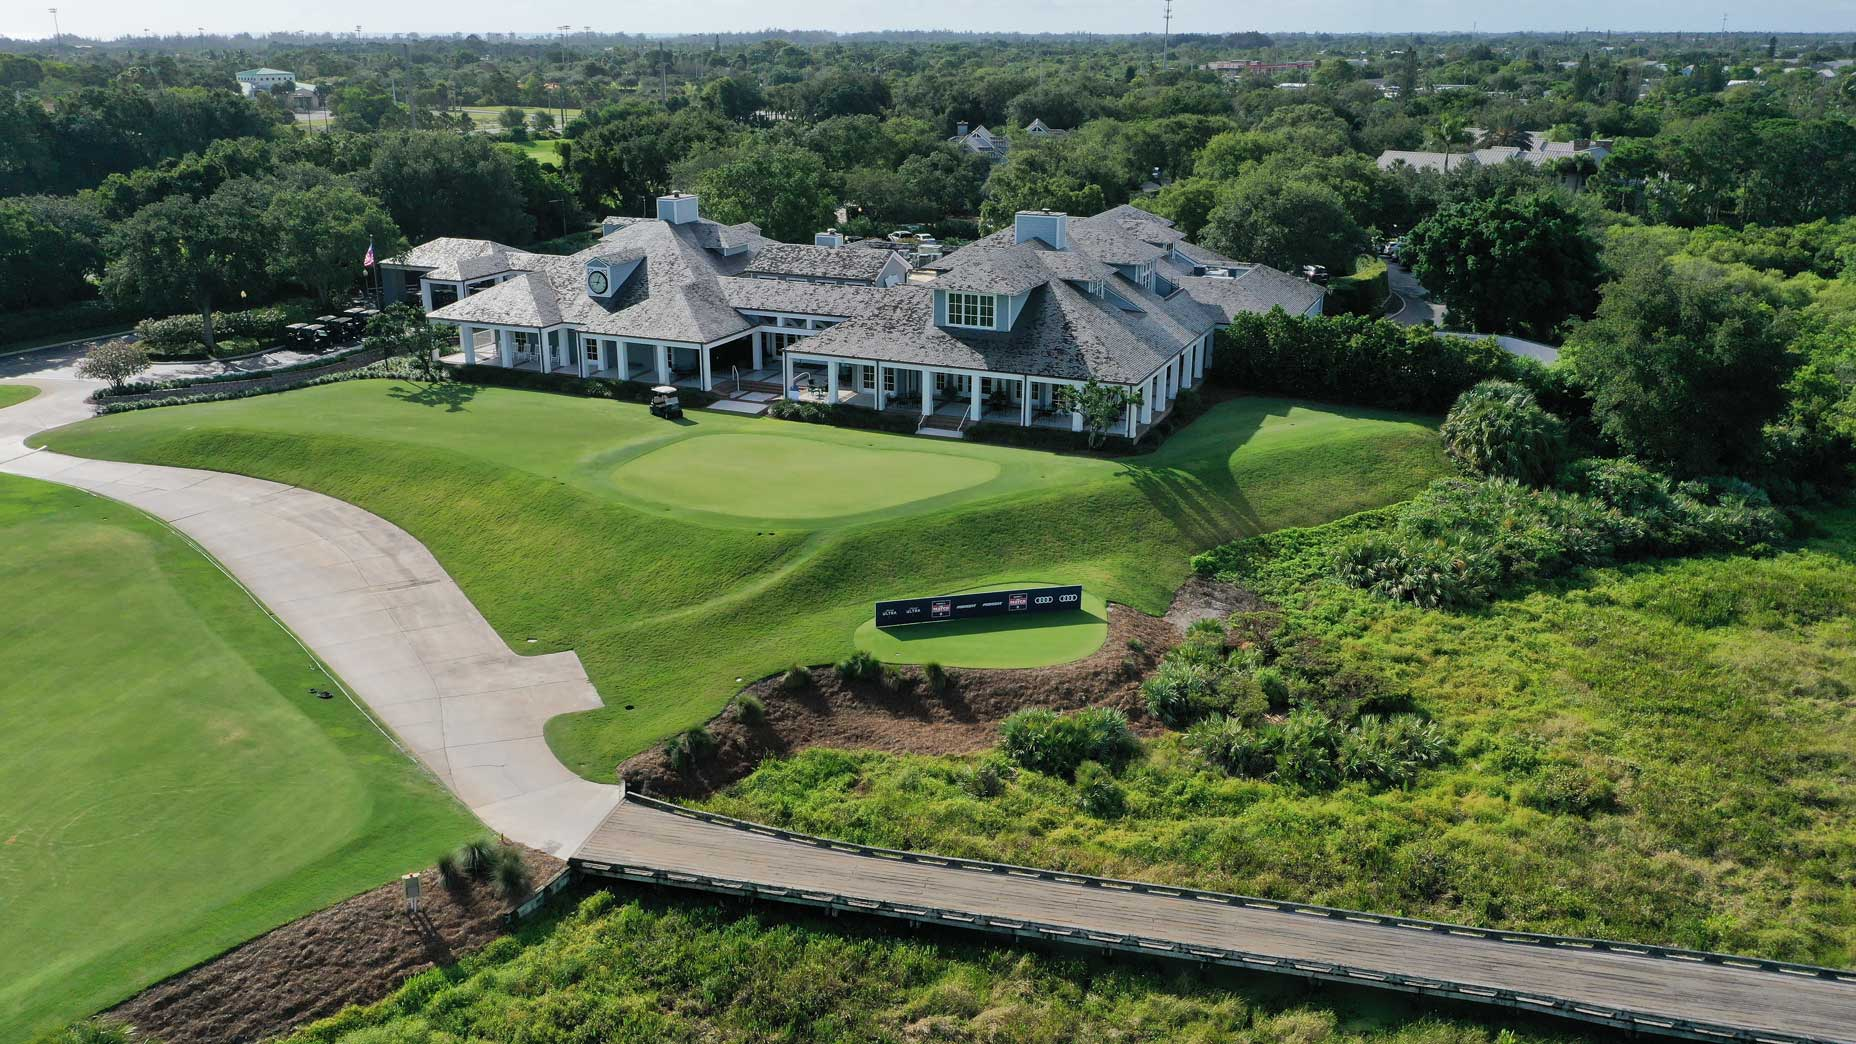 An aerial drone view of the clubhouse at Medalist Golf Club.